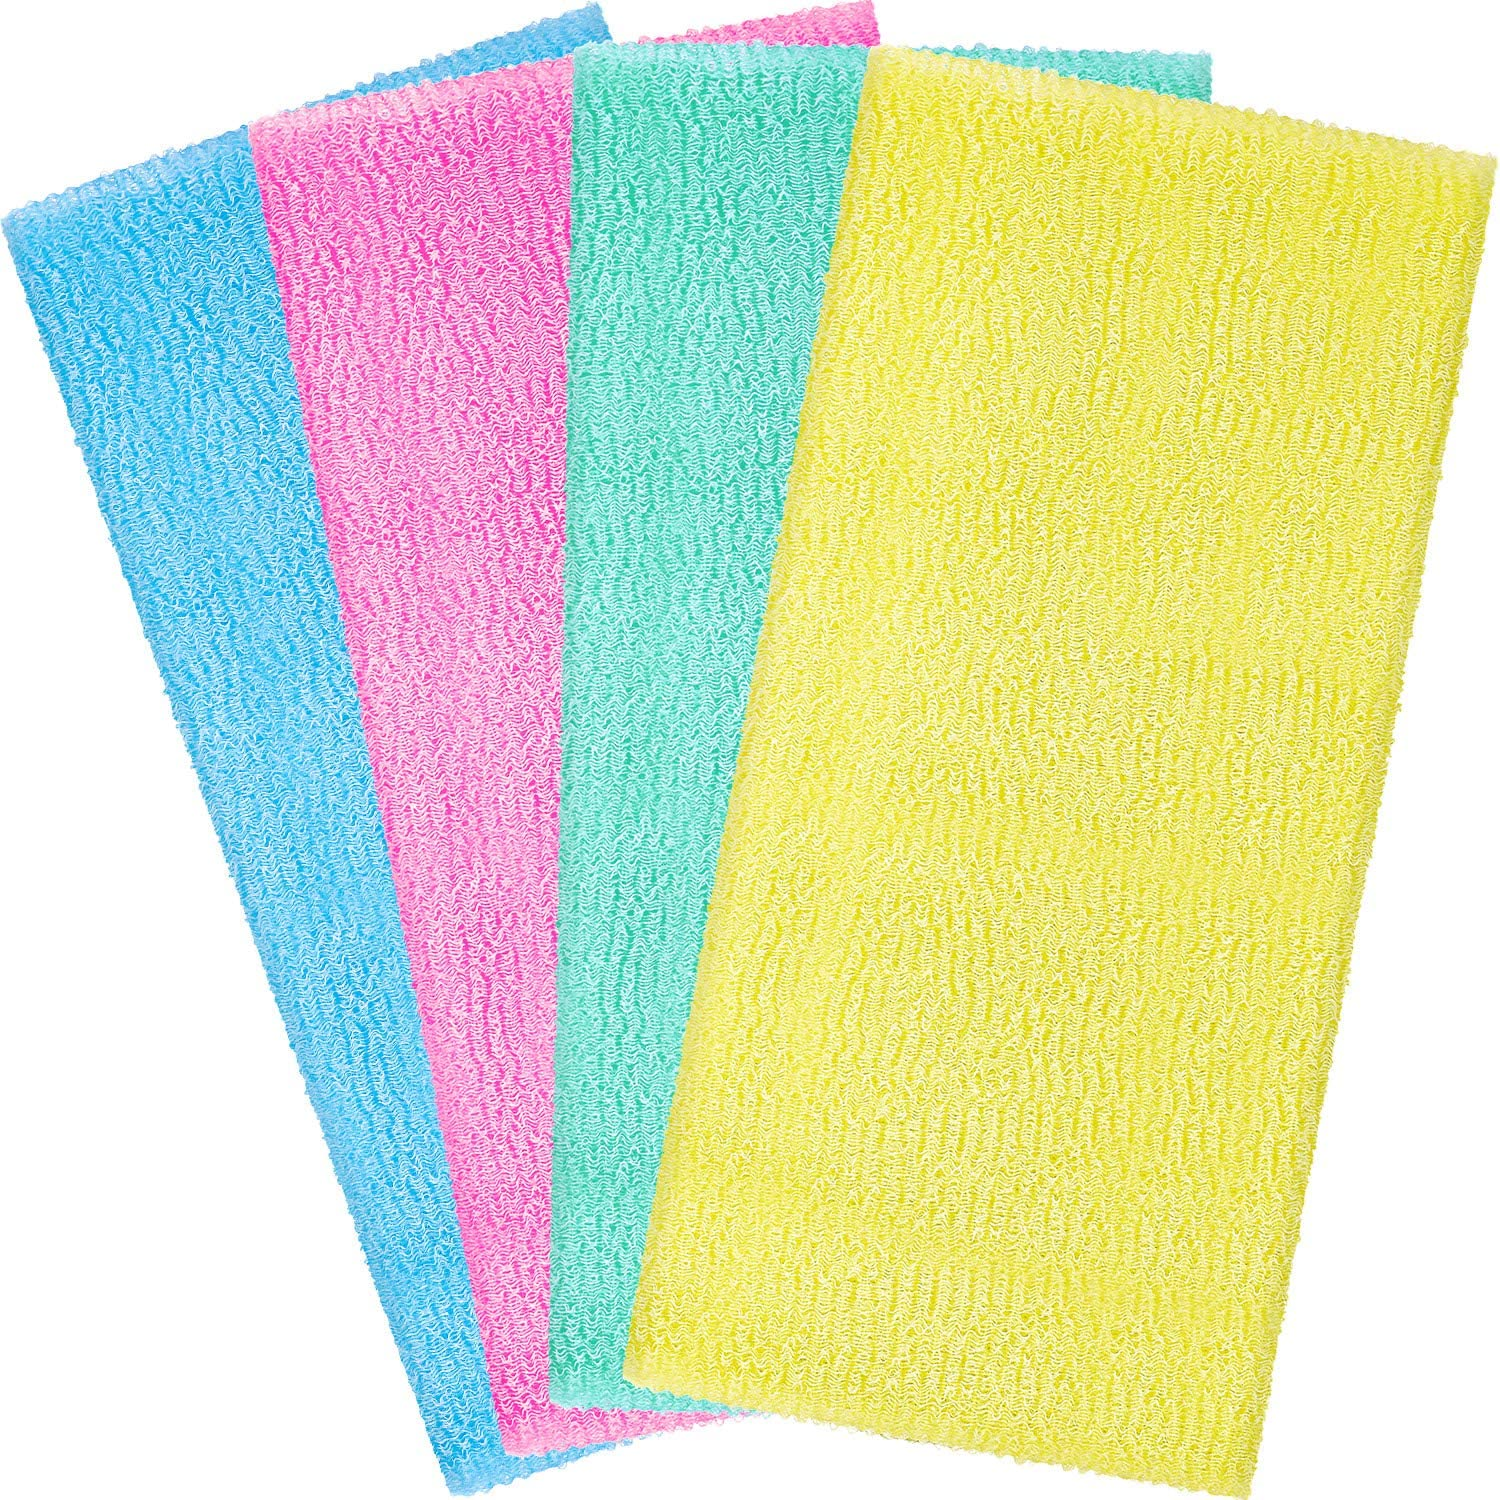 Boao Exfoliating Shower Washcloth for Body